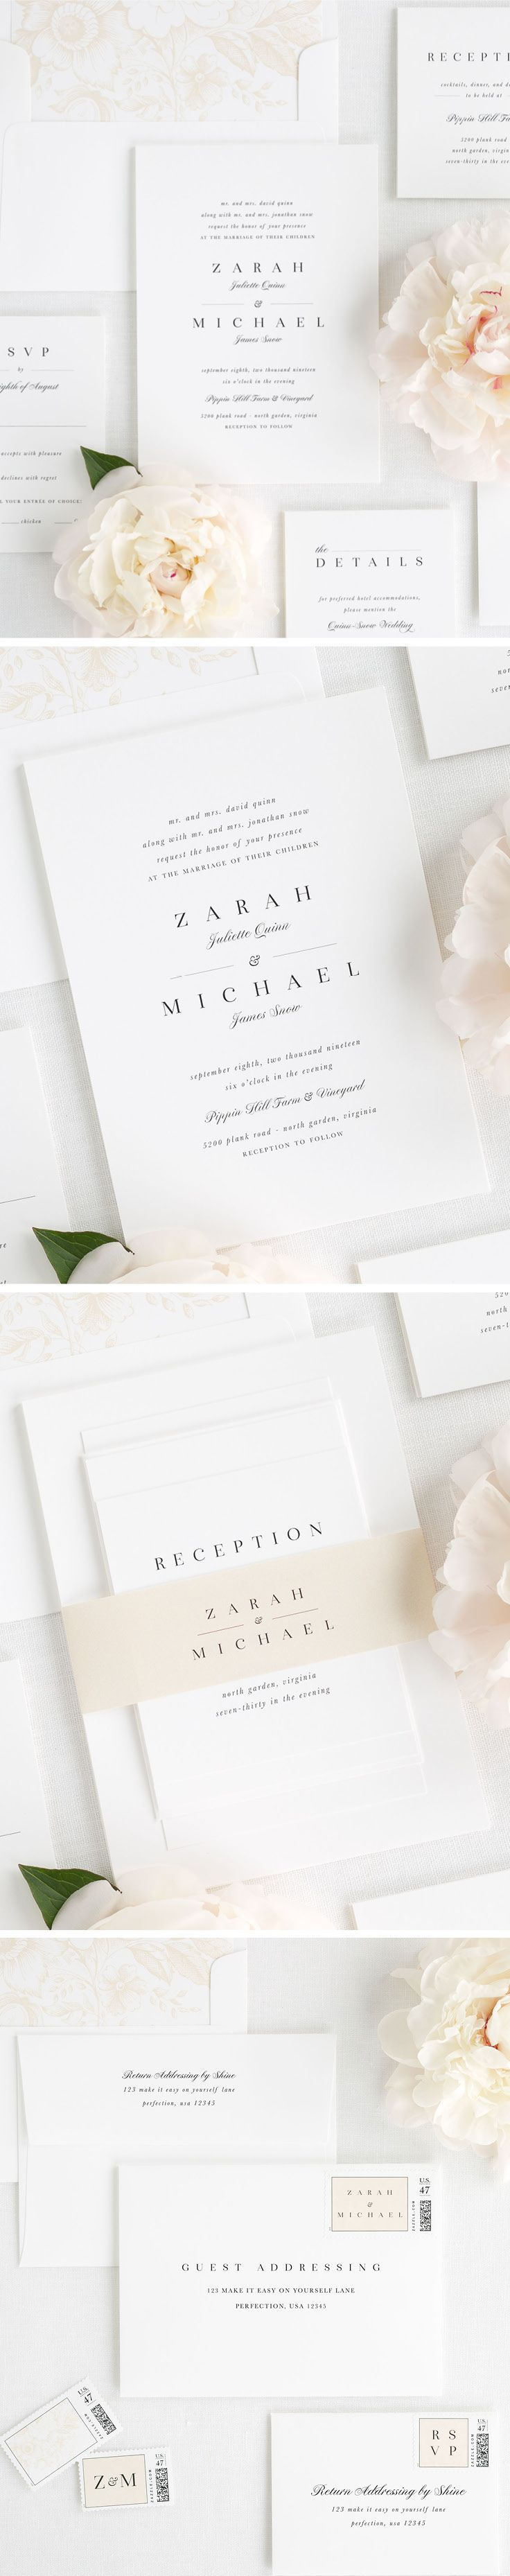 Zarah Wedding Invitations | Member Board: Stationery & Calligraphy ...